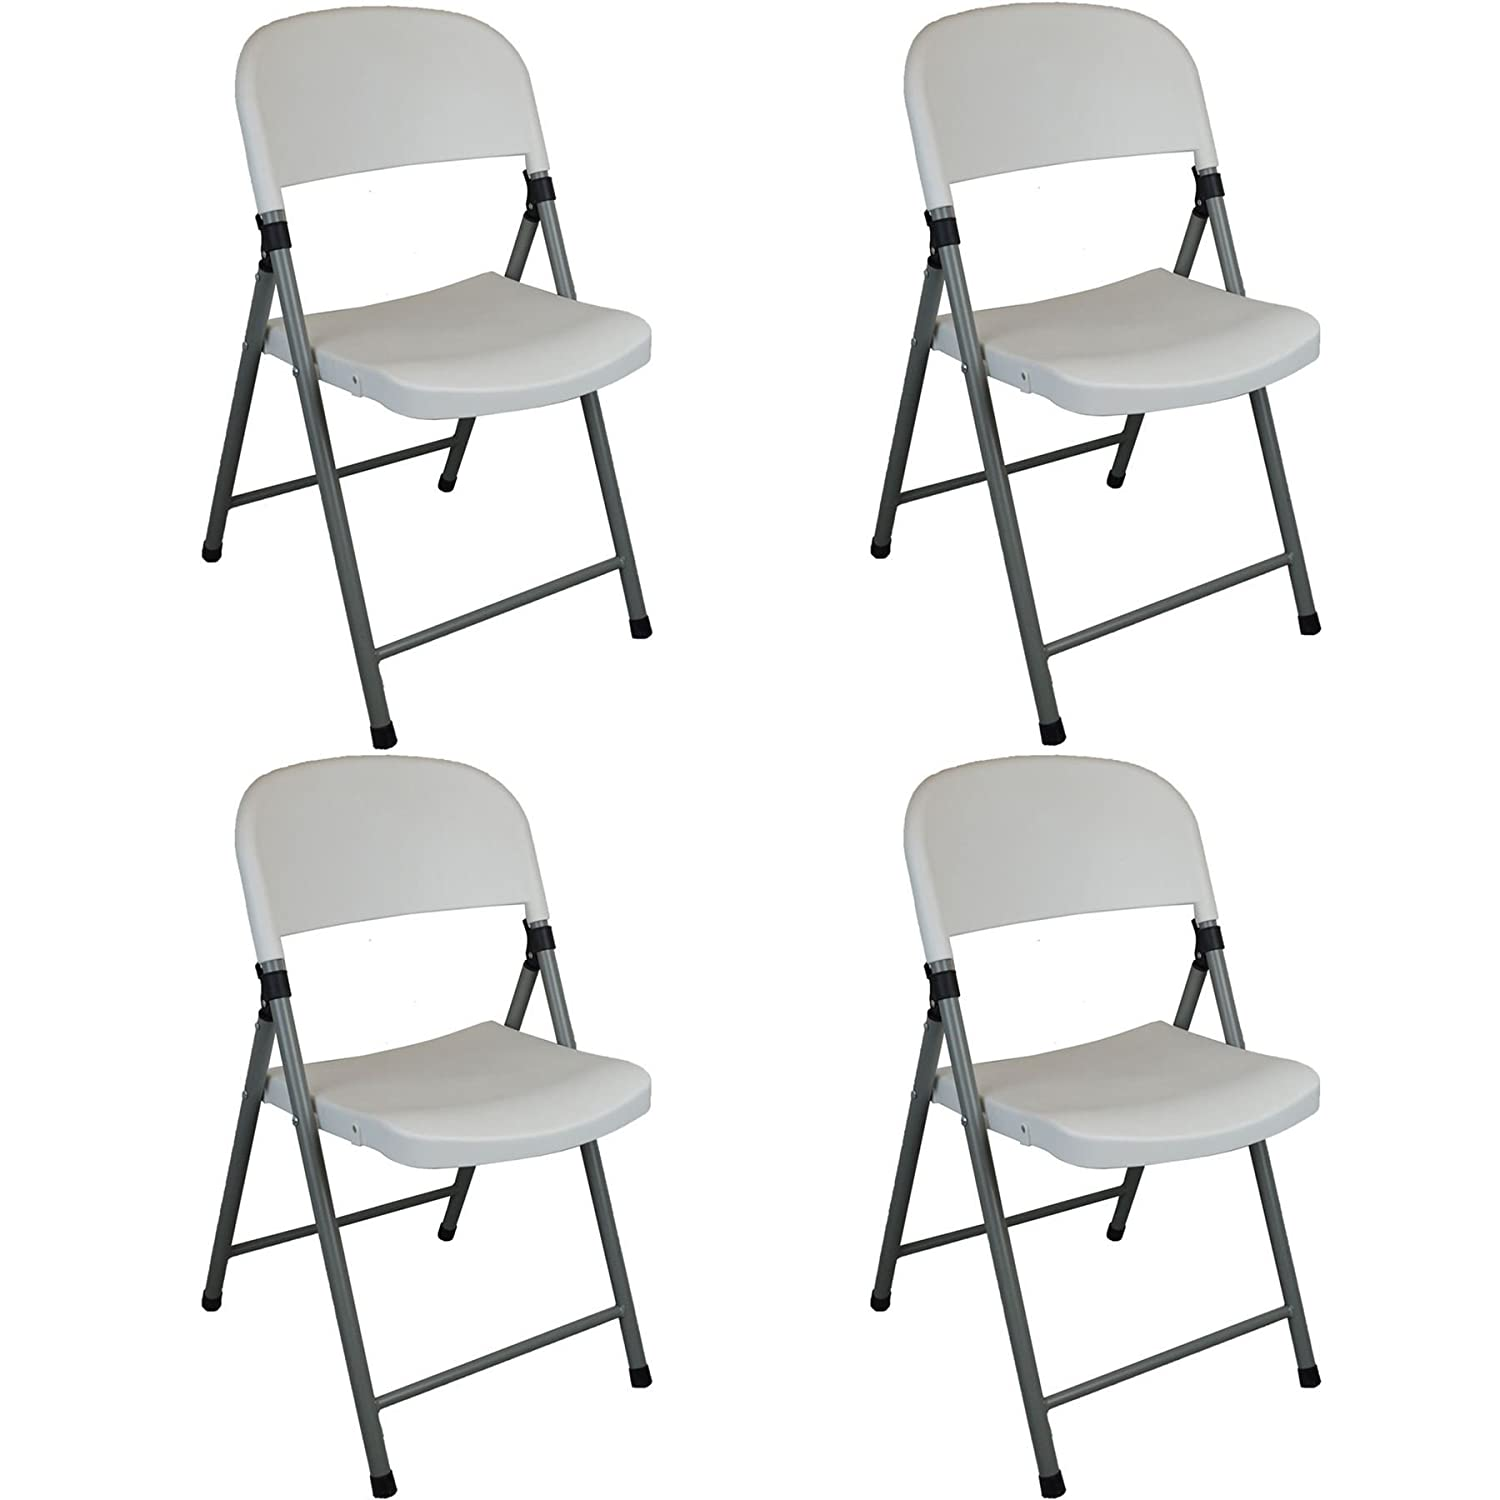 Heavy Duty Plastic Folding Indoor / Outdoor, Office / Camping Chair - Pack Of 4 Harbour Housewares